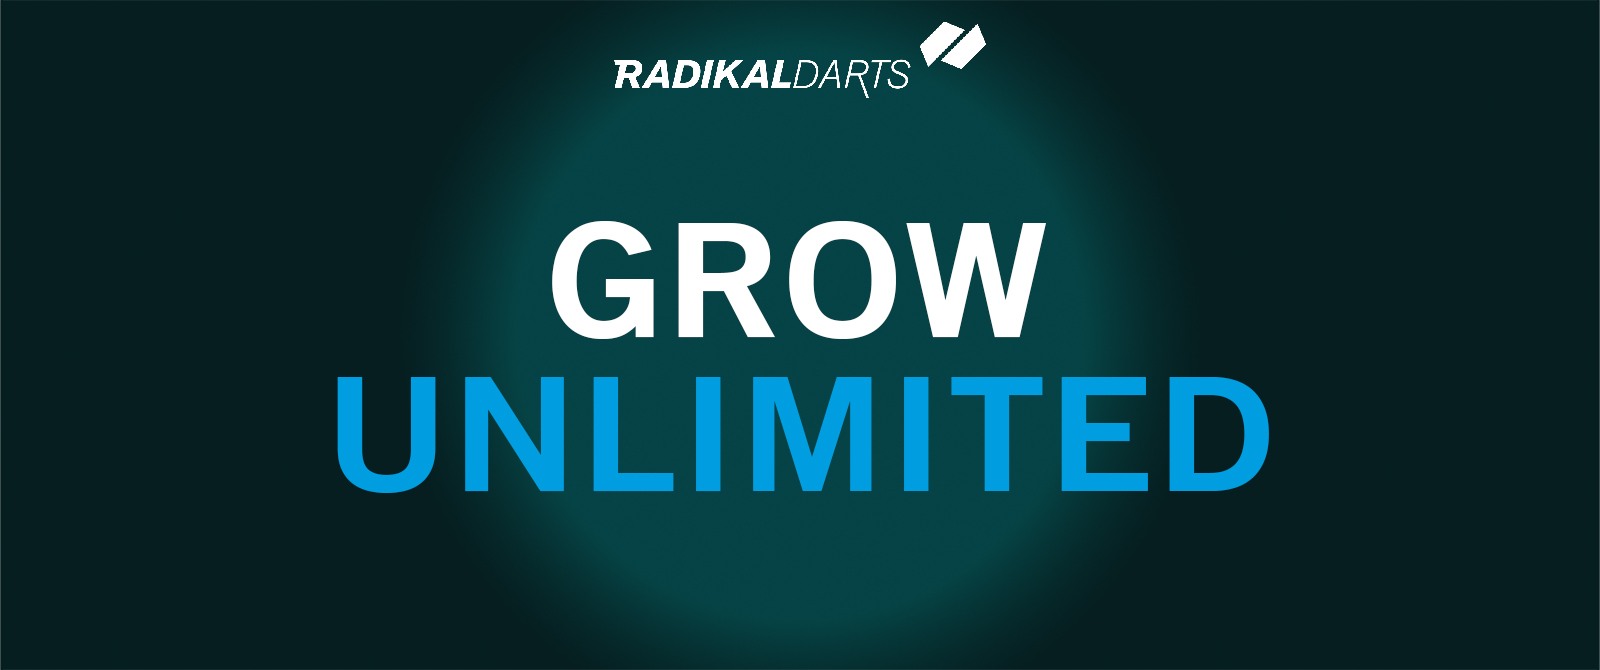 GROW UNLIMITED